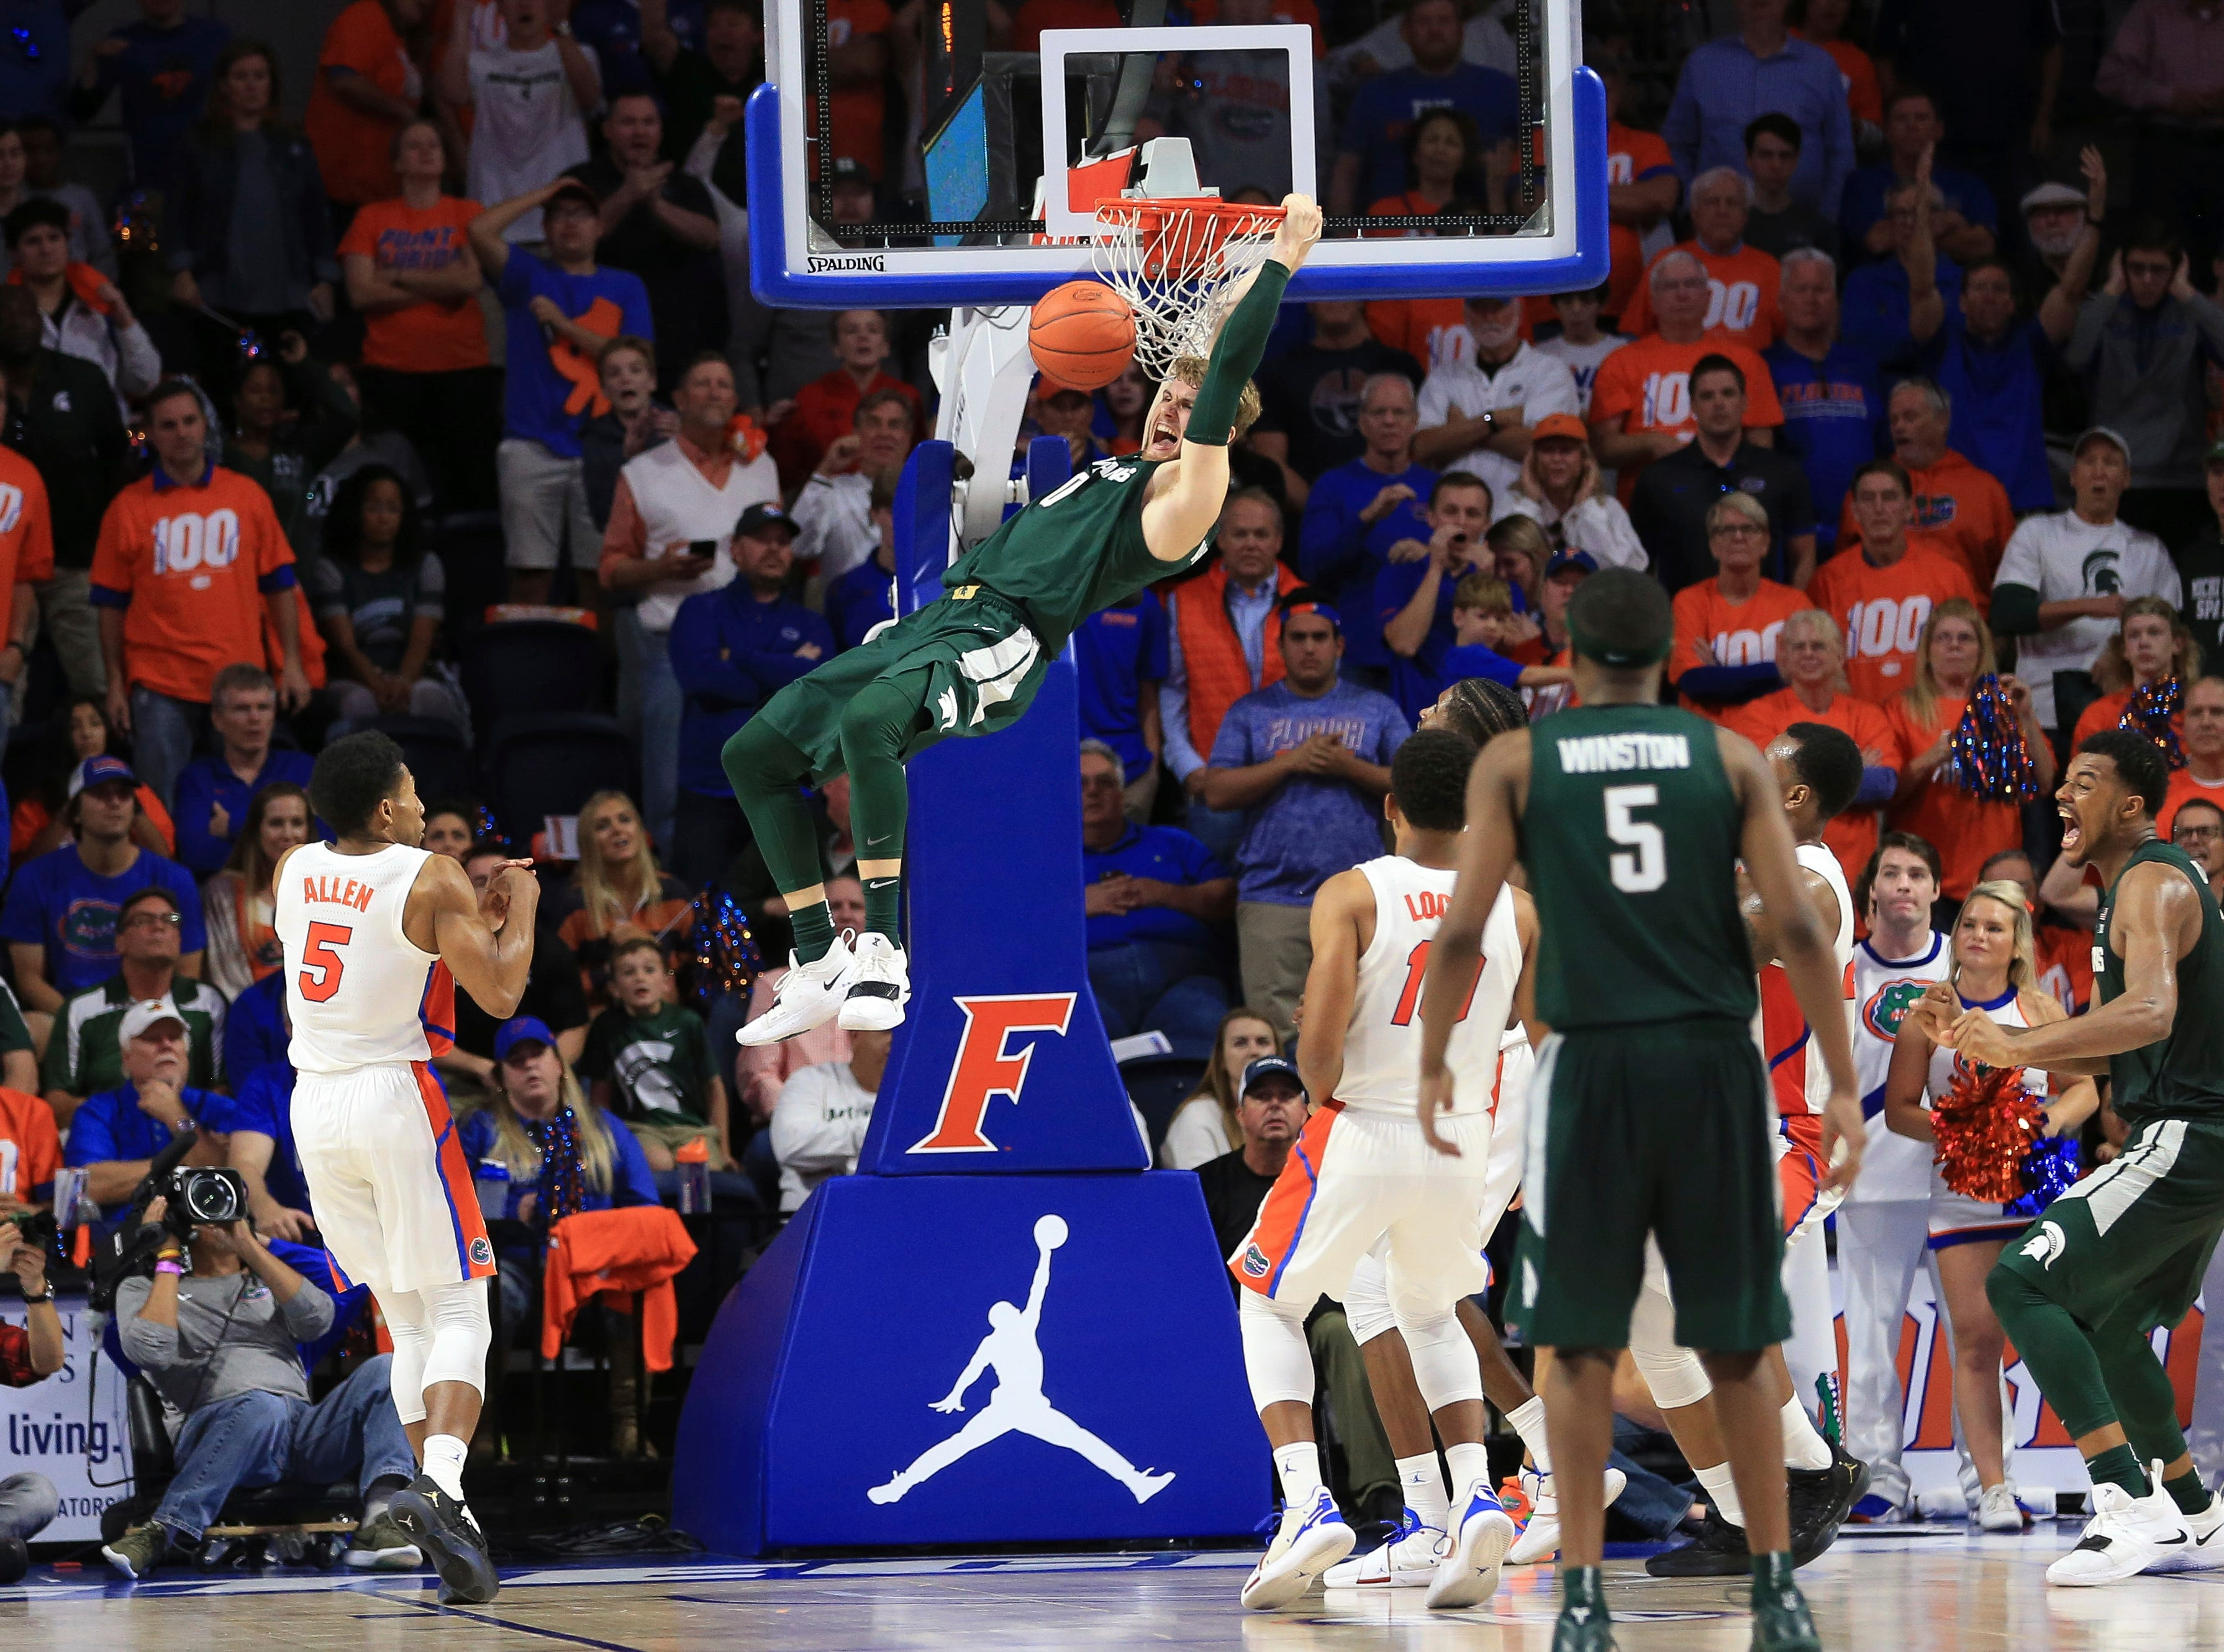 Michigan State forward Kyle Ahrens (0) dunks at the end of the second half.